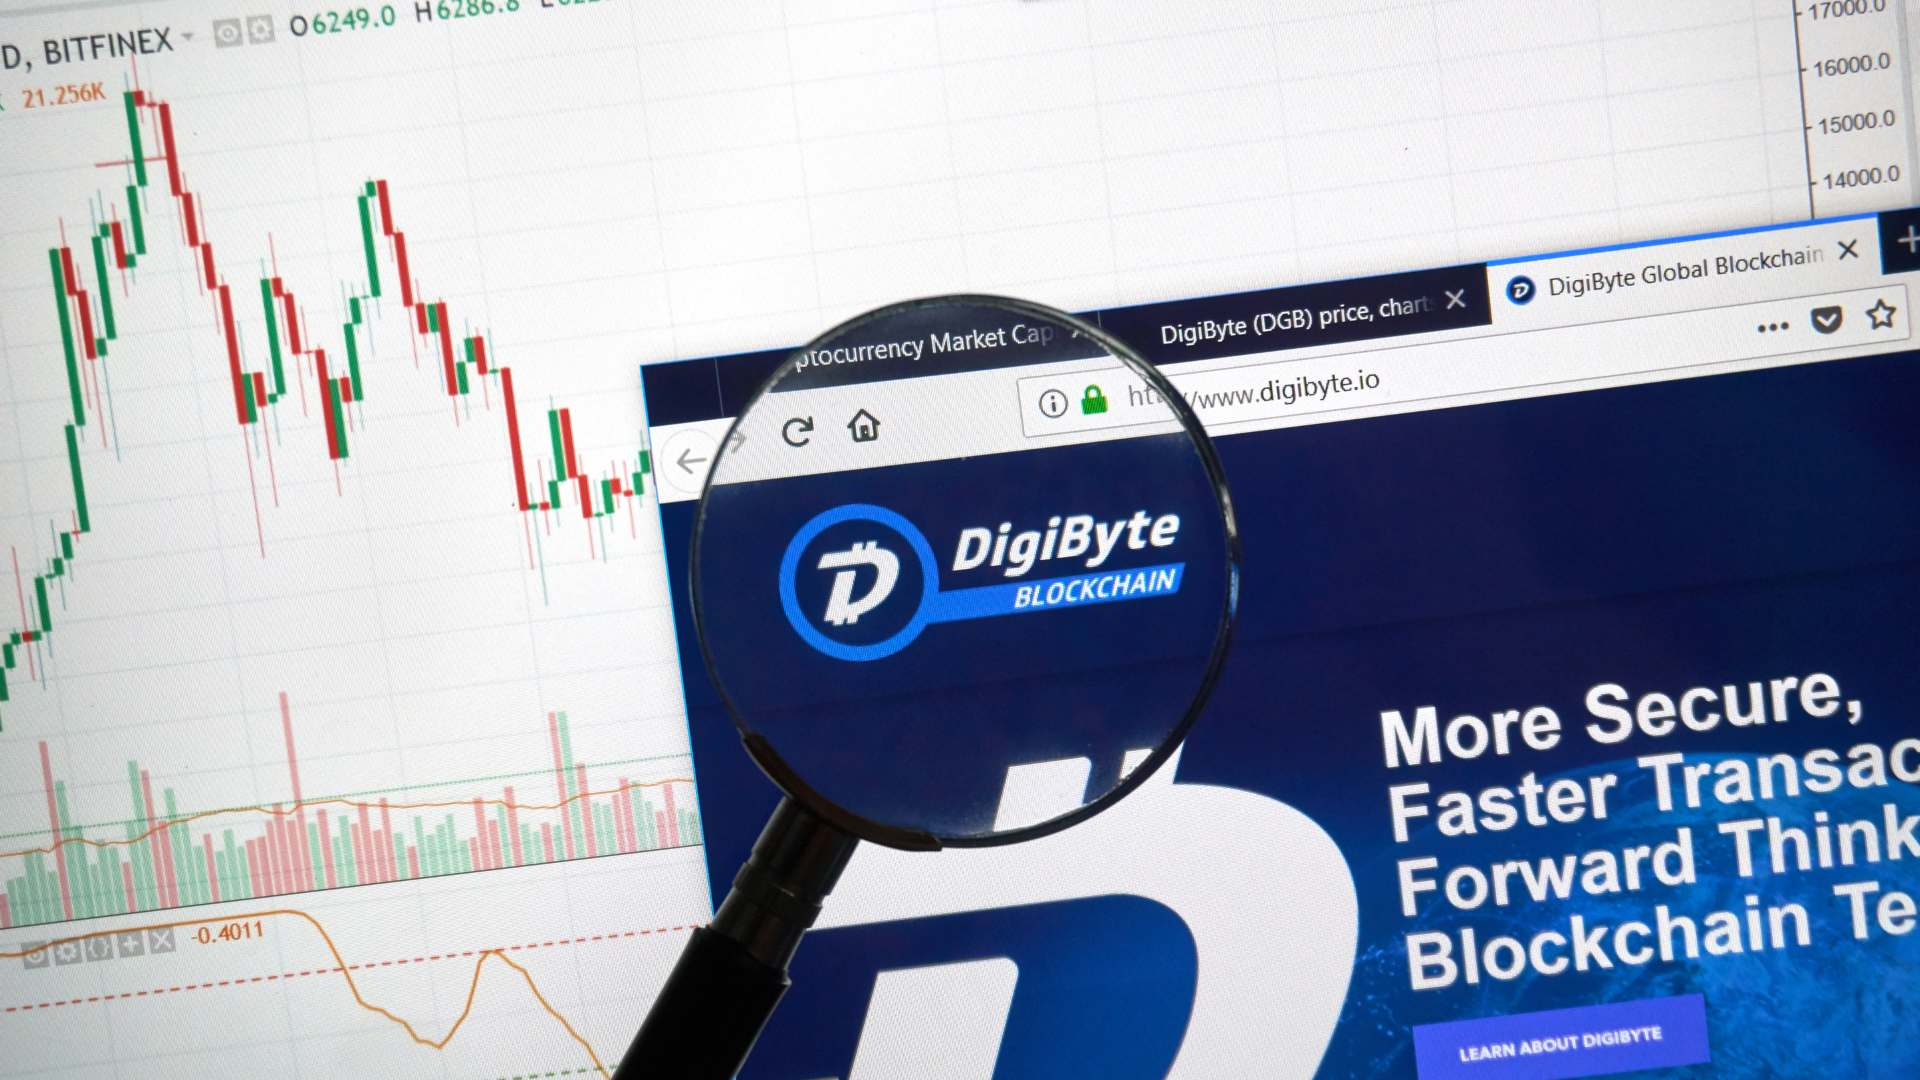 Poloniex vs. DigiByte: a delisting due to centralisation?